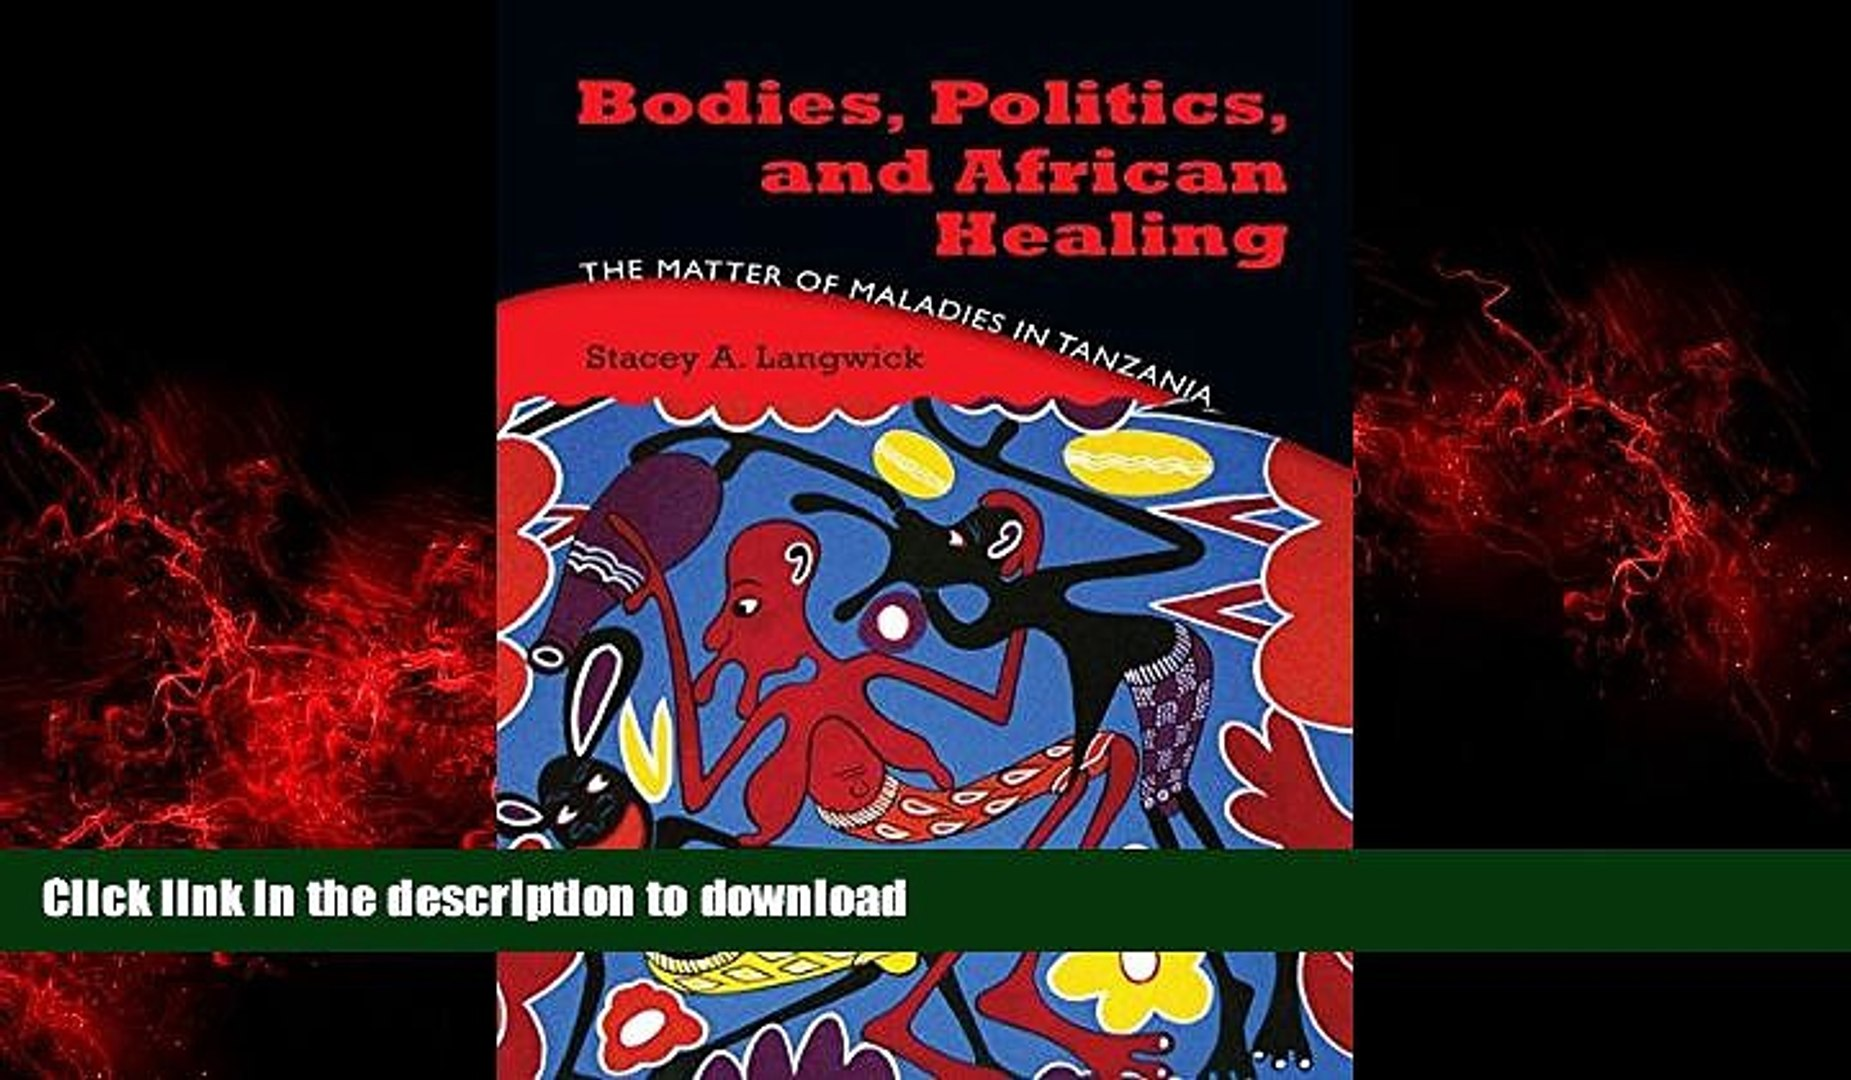 liberty books  Bodies, Politics, and African Healing: The Matter of Maladies in Tanzania online